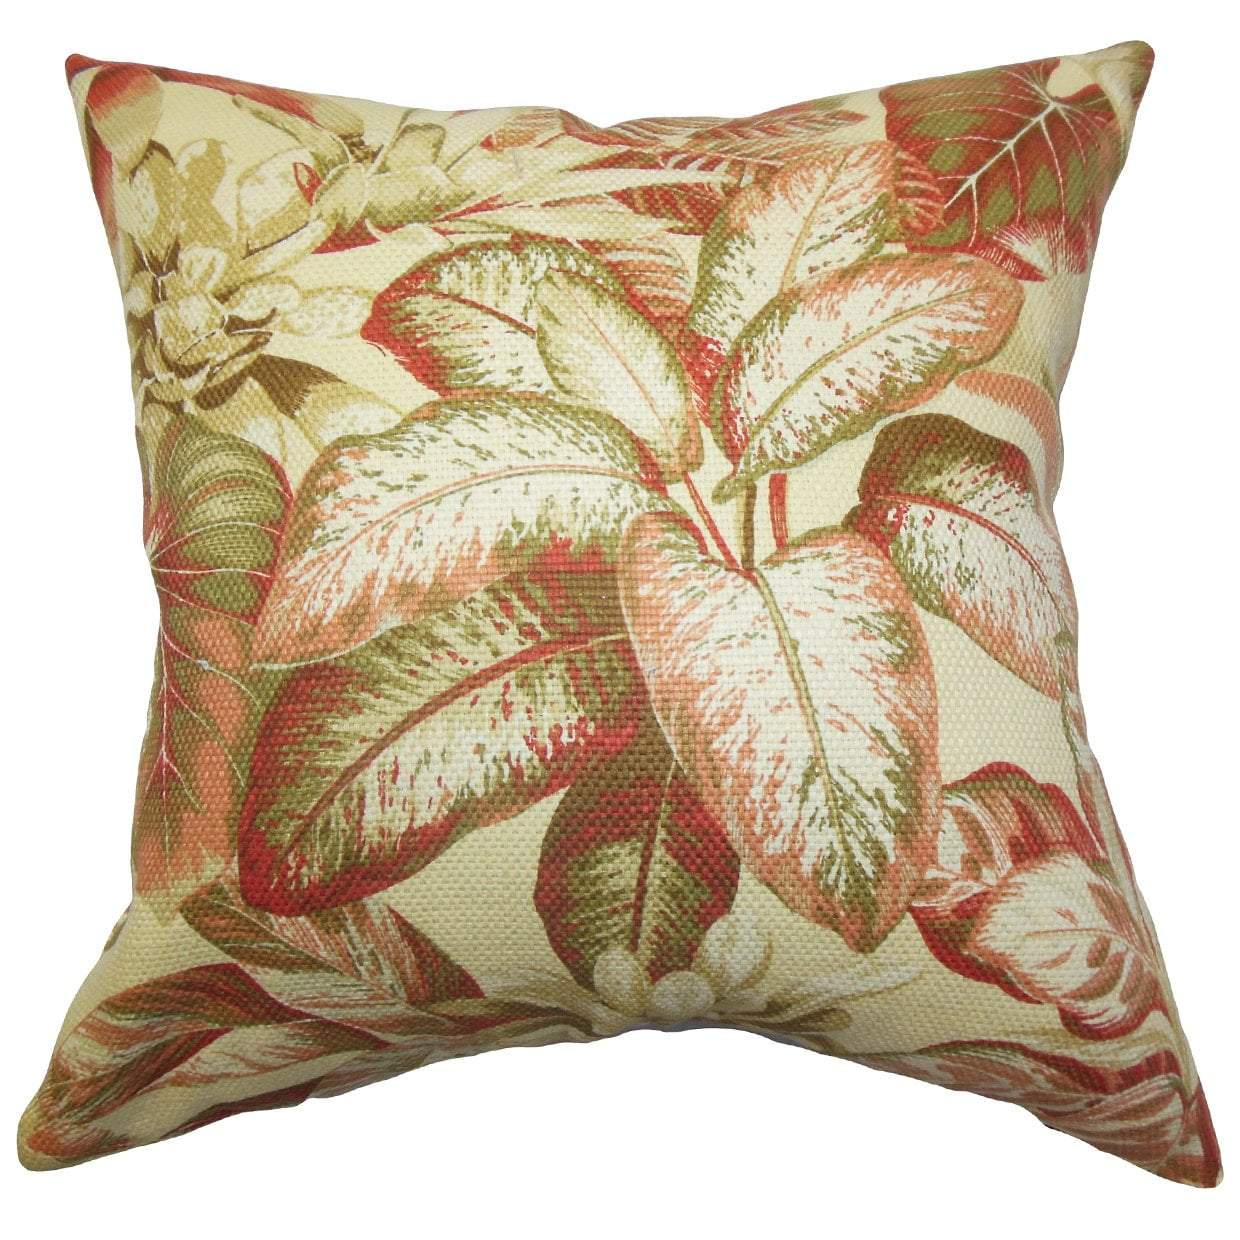 Multi Cotton Floral Coastal Throw Pillow Cover